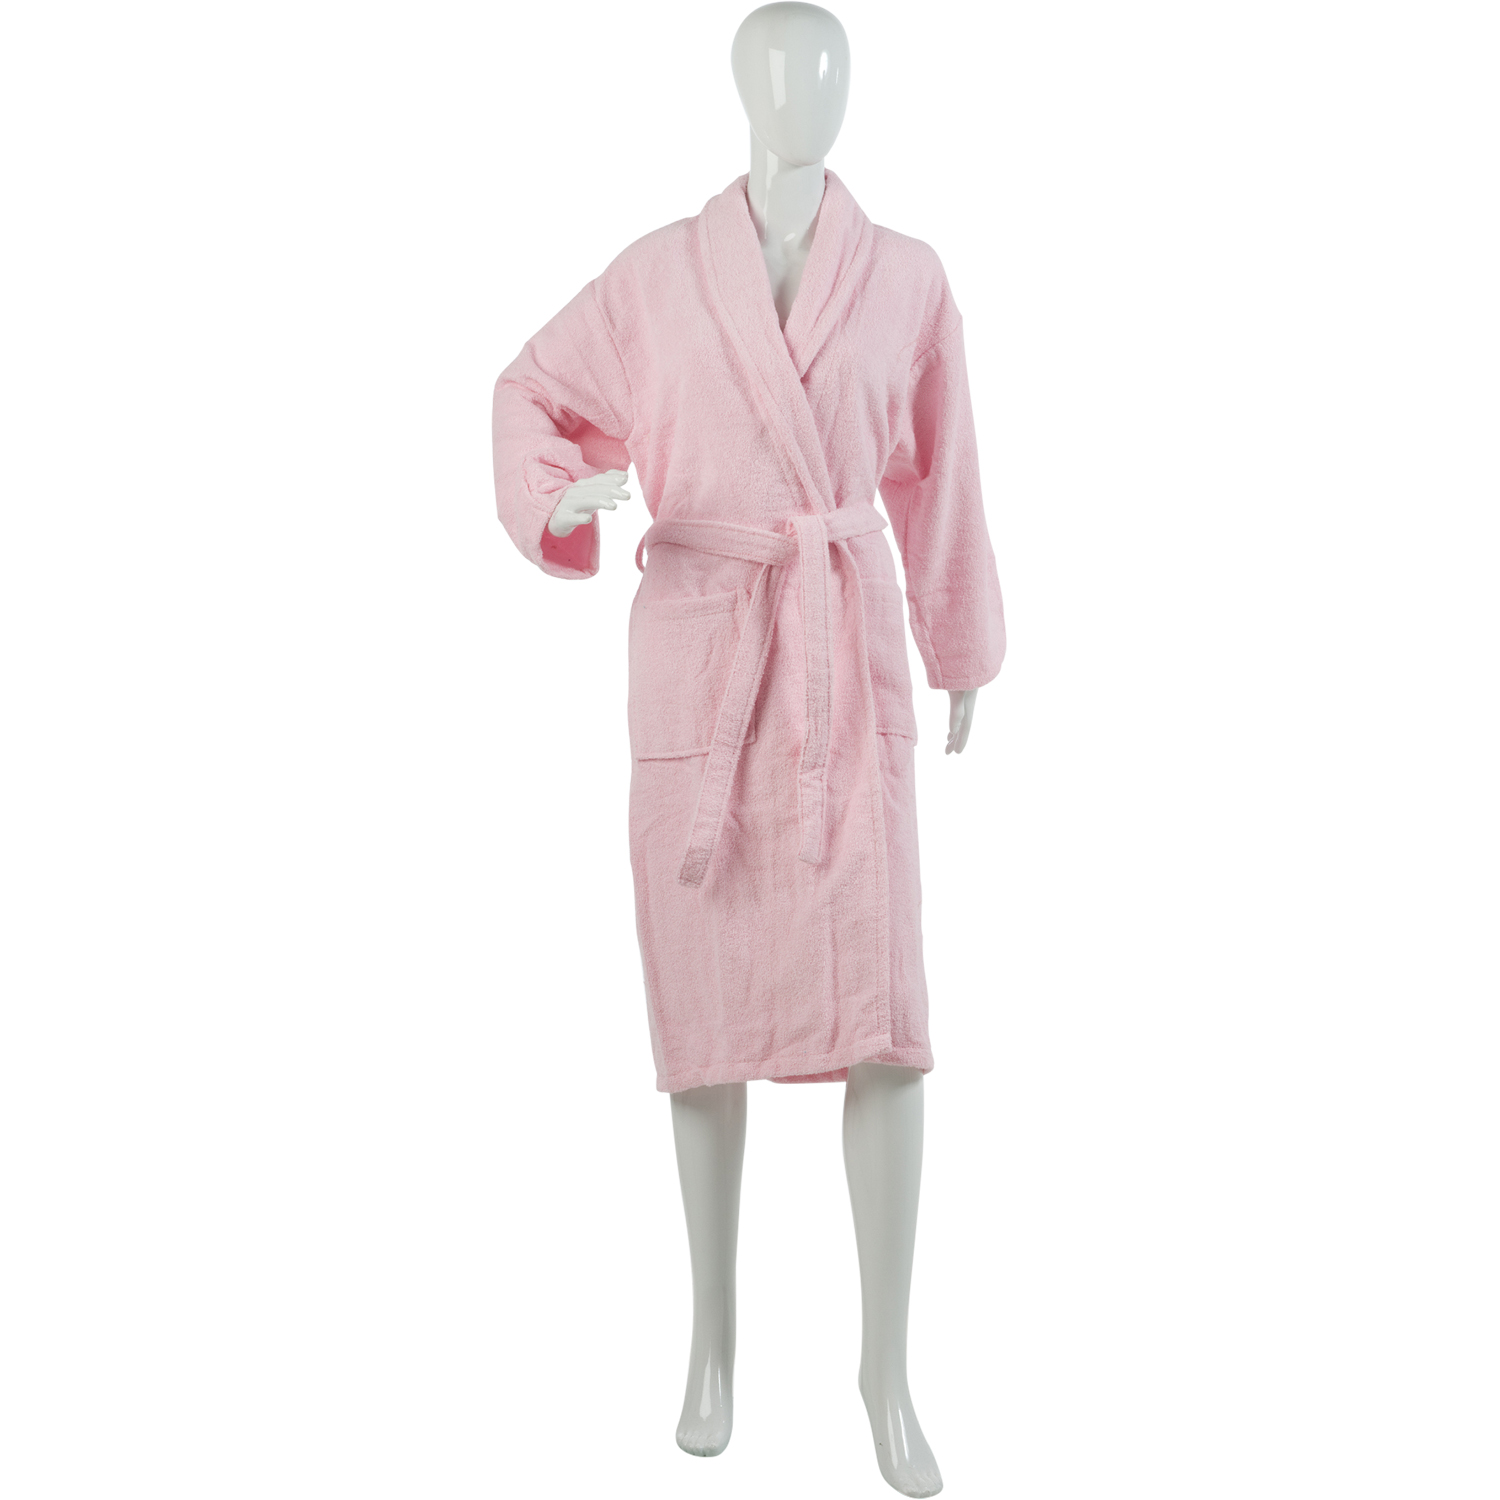 Outstanding Towel Dressing Gown Womens Vignette - Best Evening Gown ...